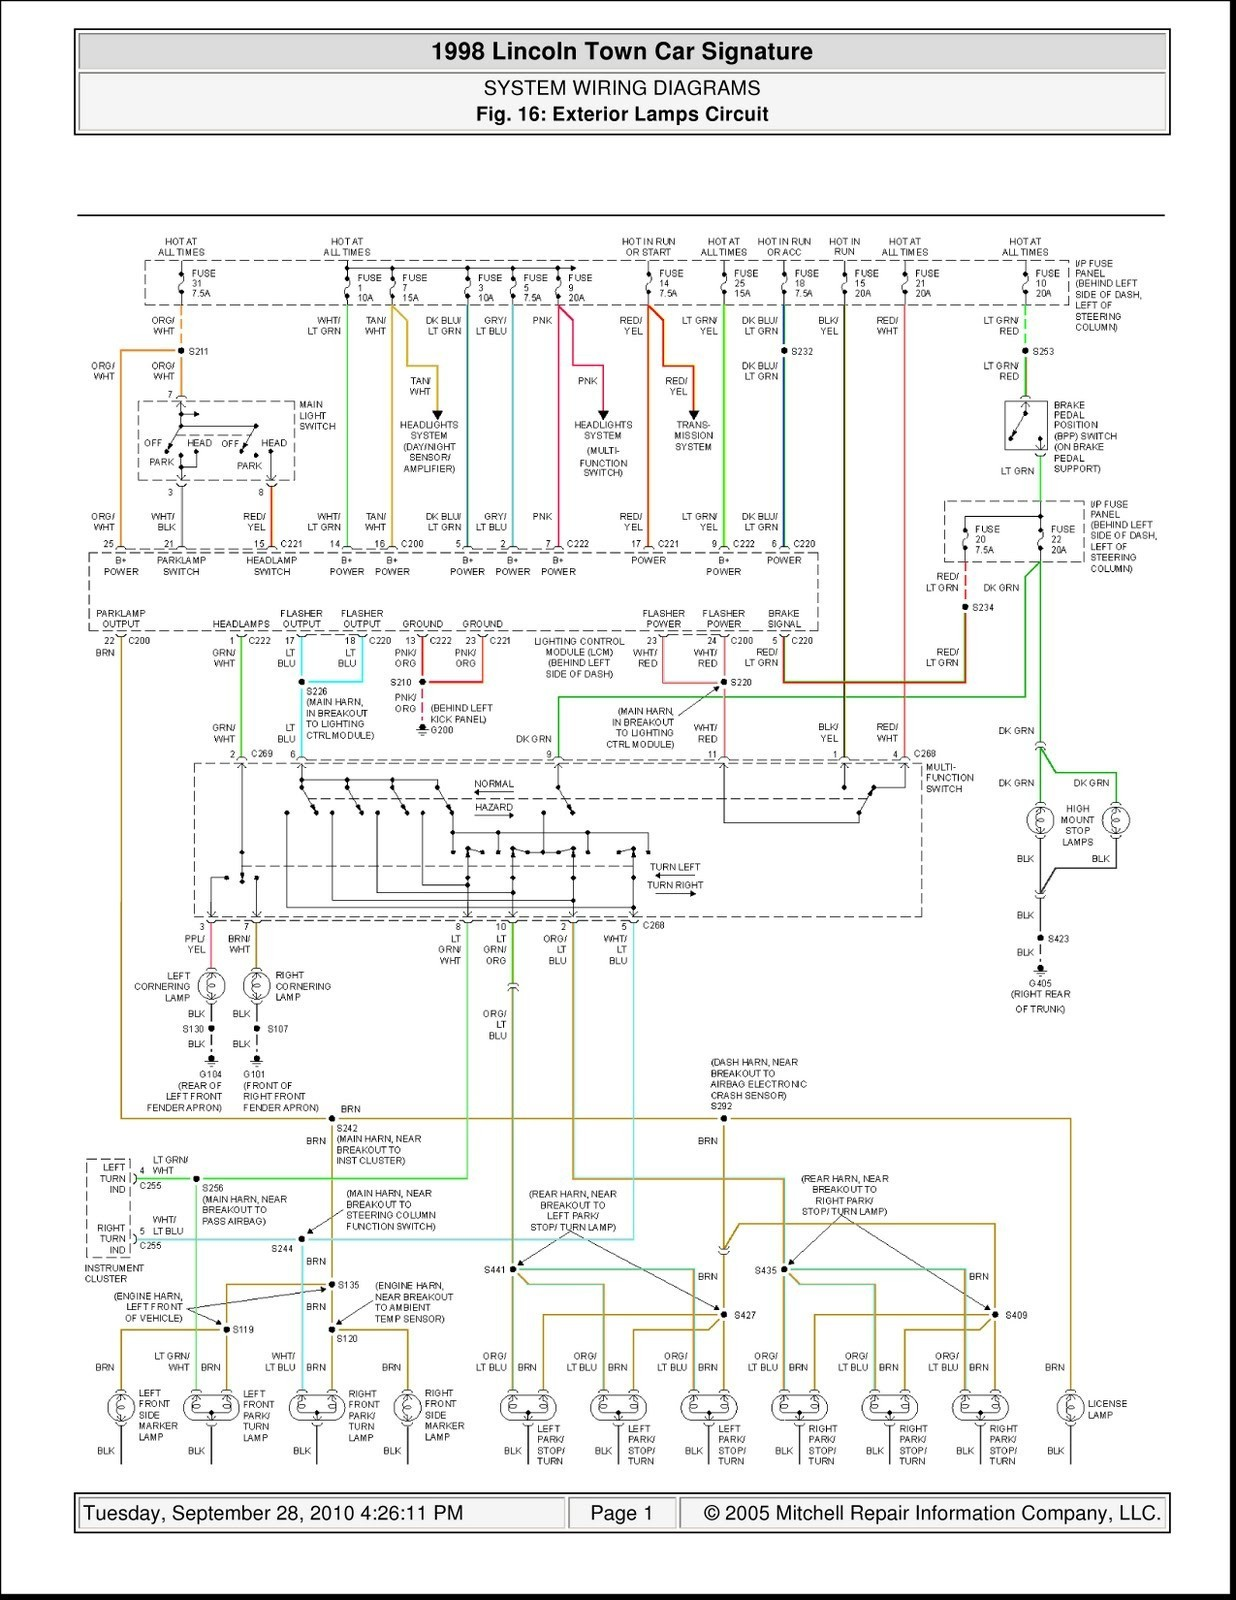 2001 Lincoln town Car Serpentine Belt Diagram Lincoln Continental Engine Diagram Worksheet and Wiring Diagram • Of 2001 Lincoln town Car Serpentine Belt Diagram